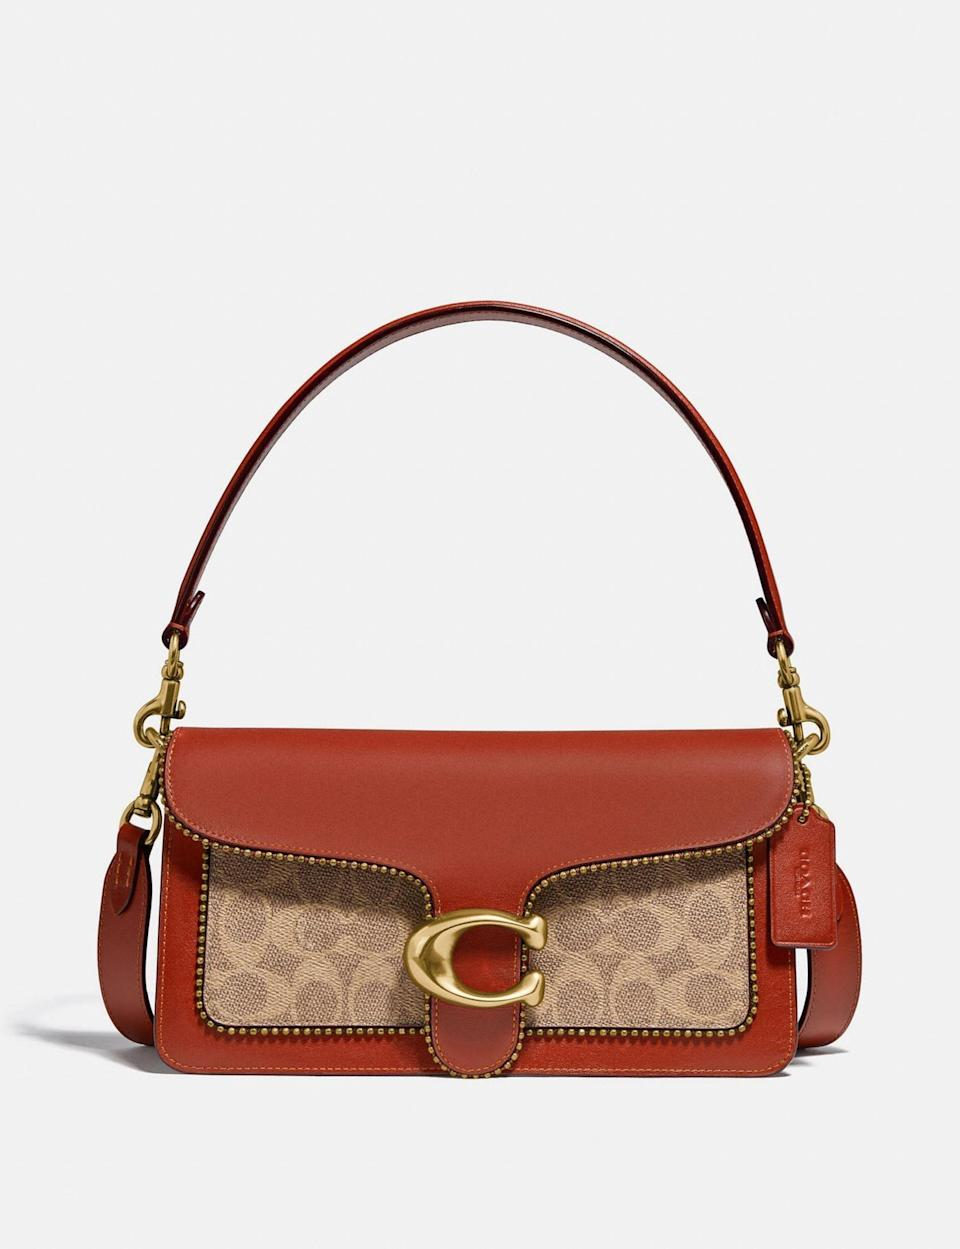 <p>Crafted in refined leather and embellished with gold accents, the <span>Tabby Shoulder Bag</span> ($395) is a compliment magnet.</p>